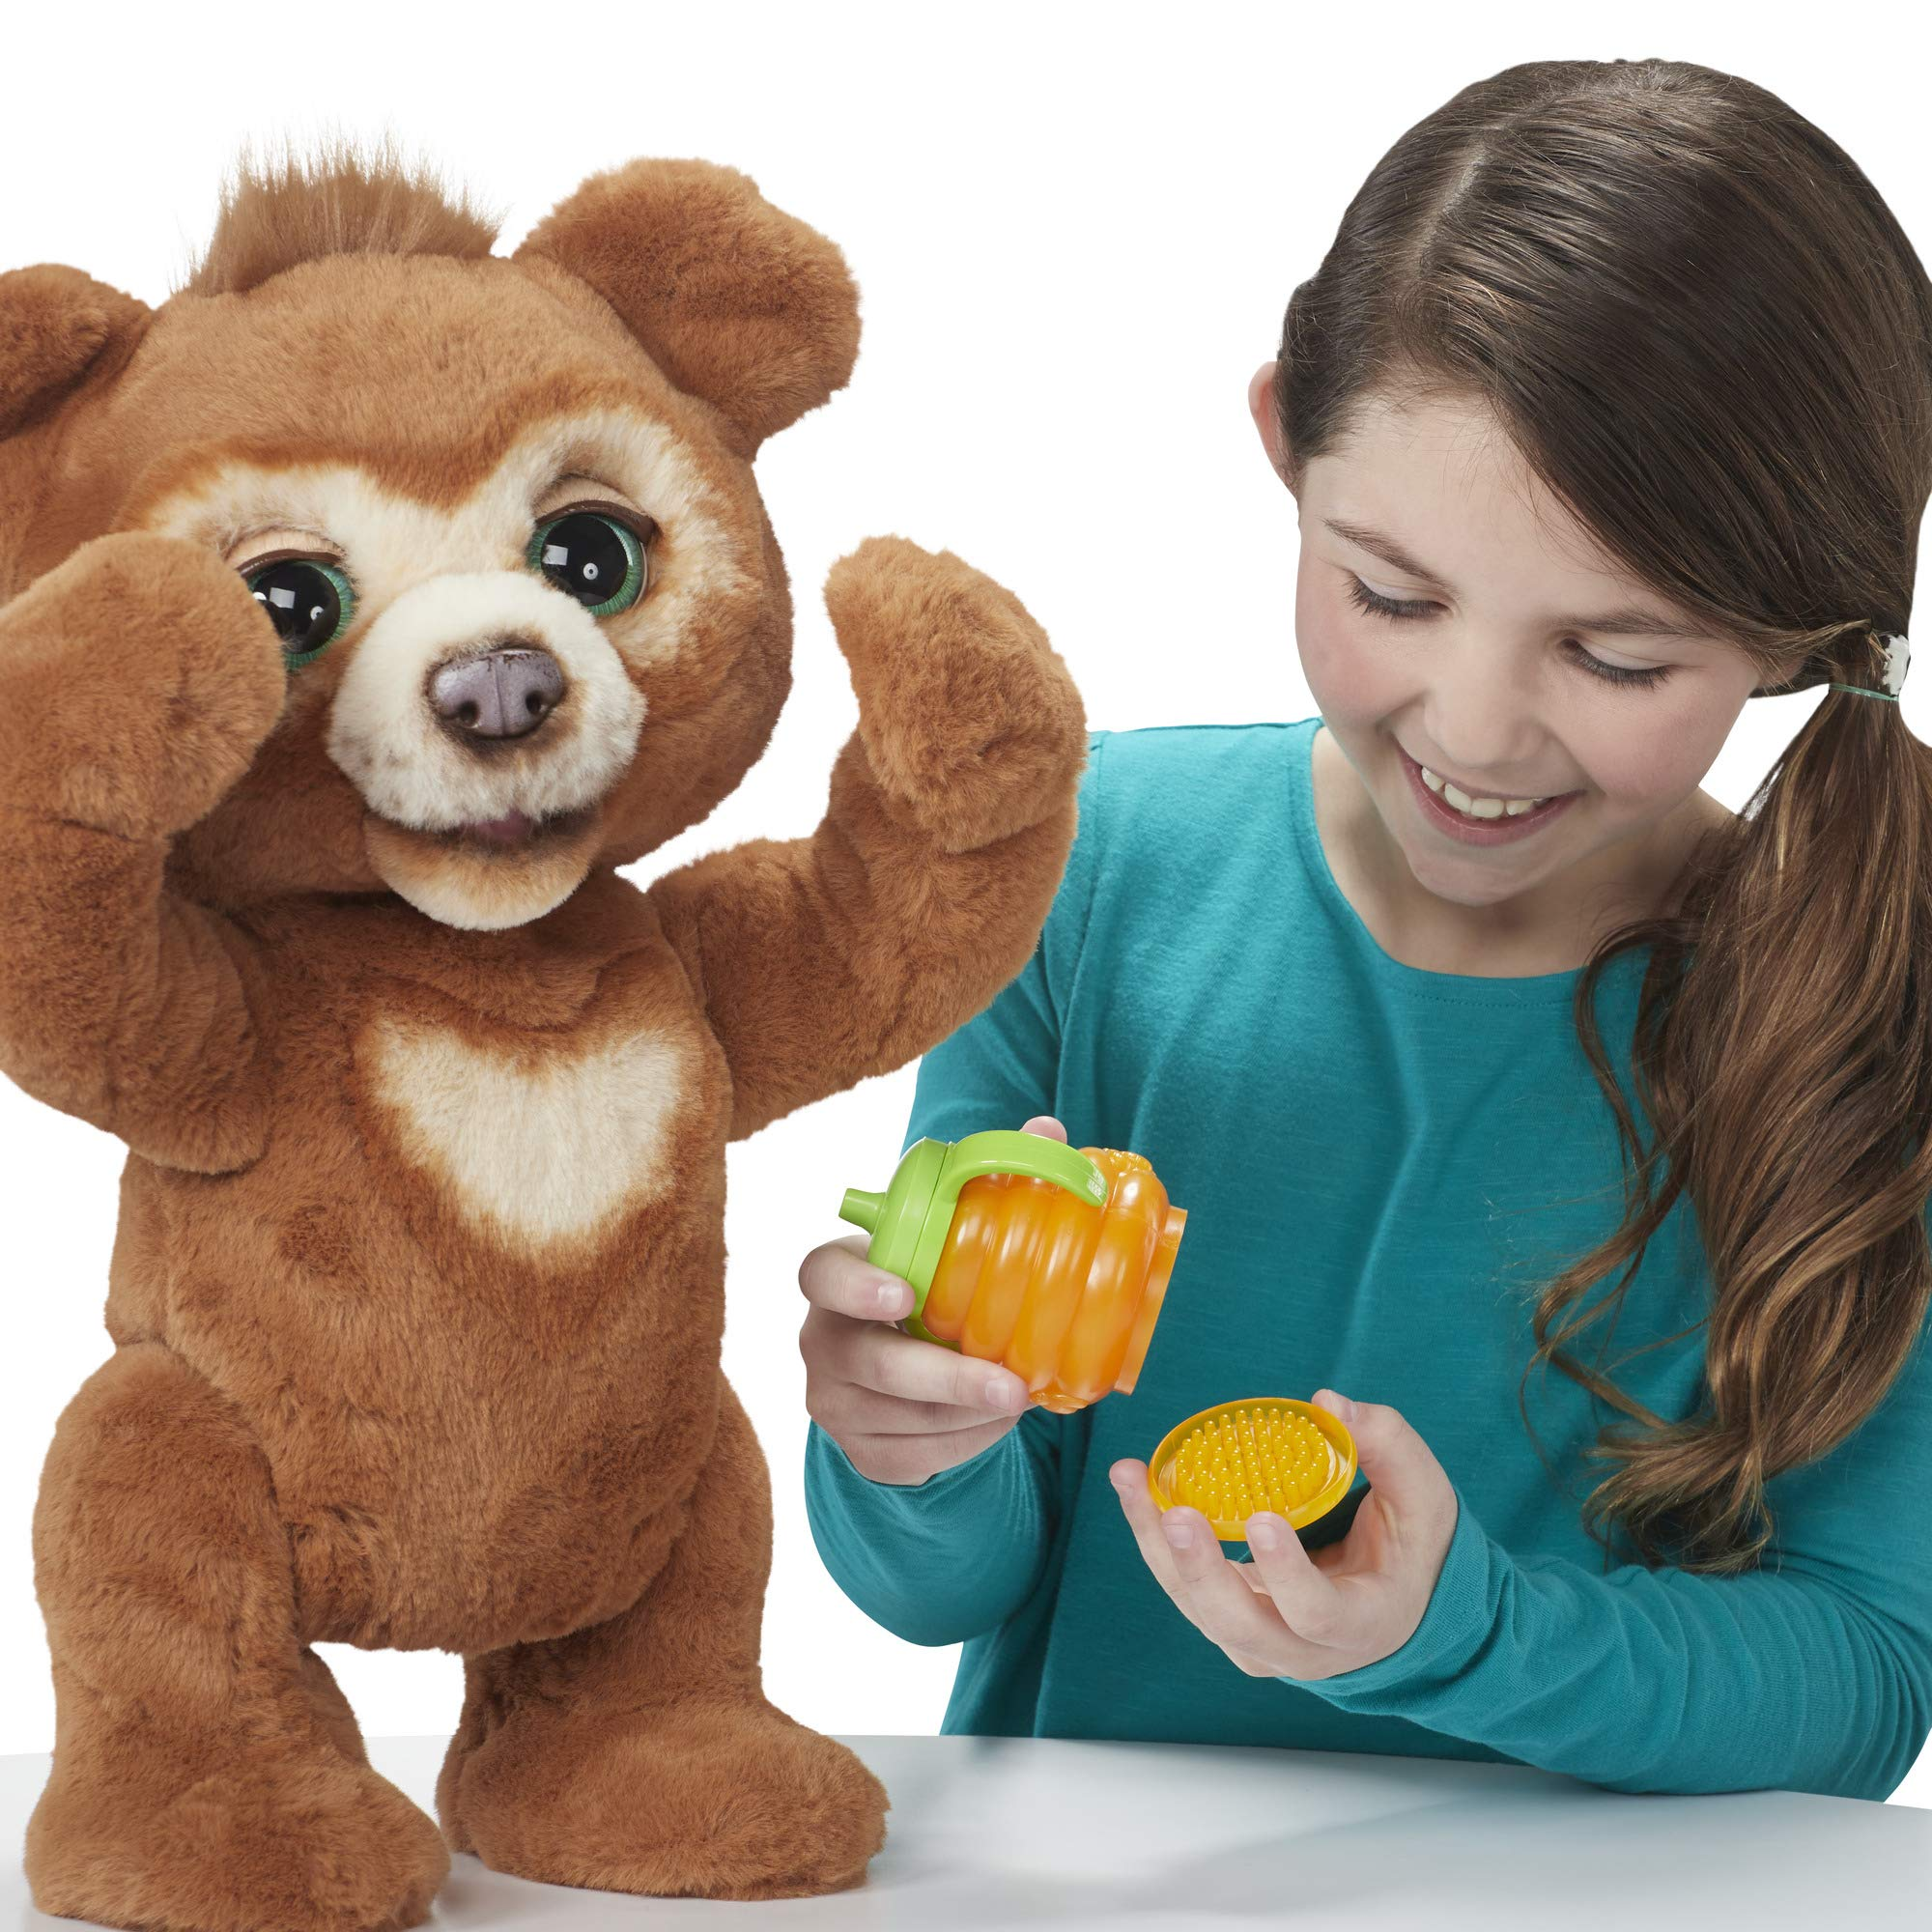 FurReal Cubby, The Curious Bear Interactive Plush Toy, Ages 4 and Up by FurReal (Image #14)